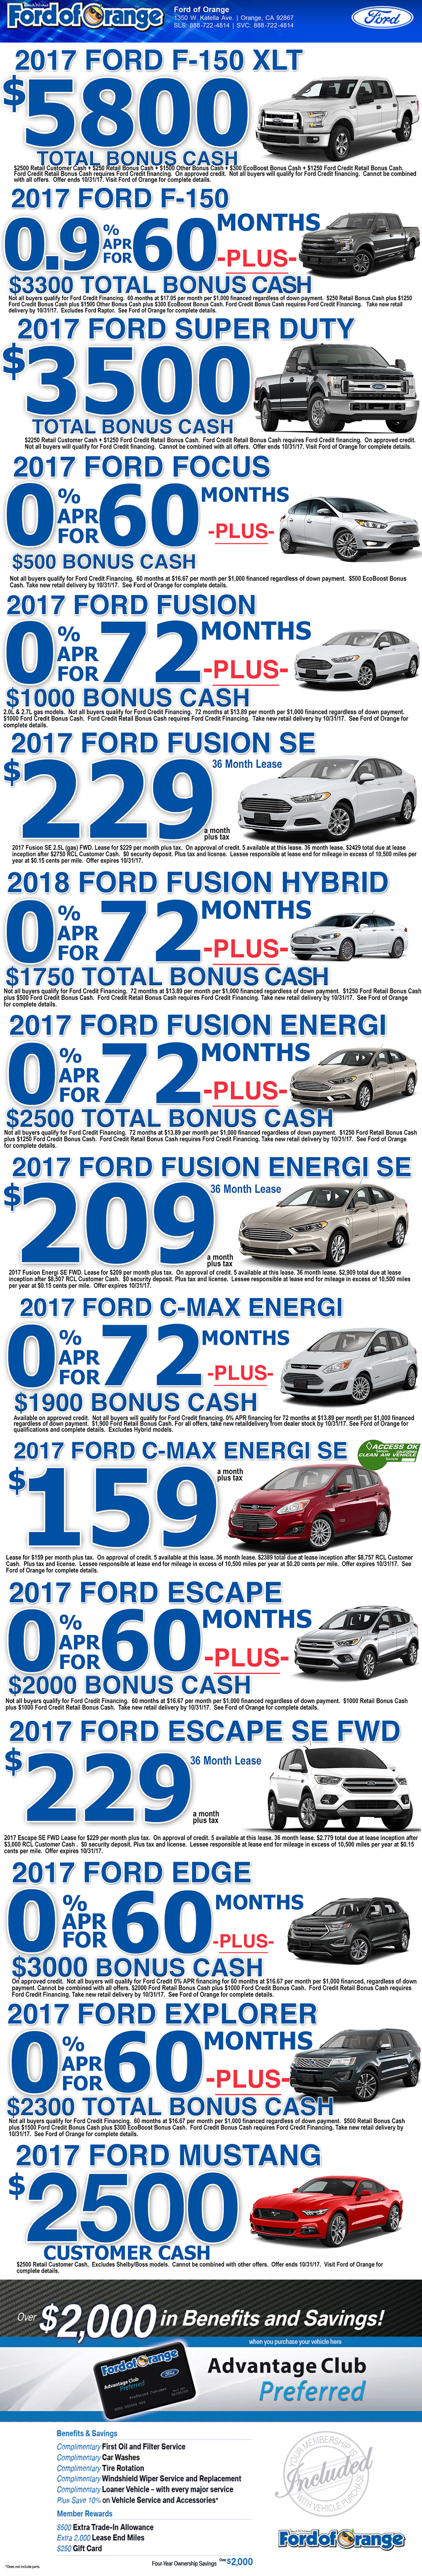 ford of orange special offers - ford orange county